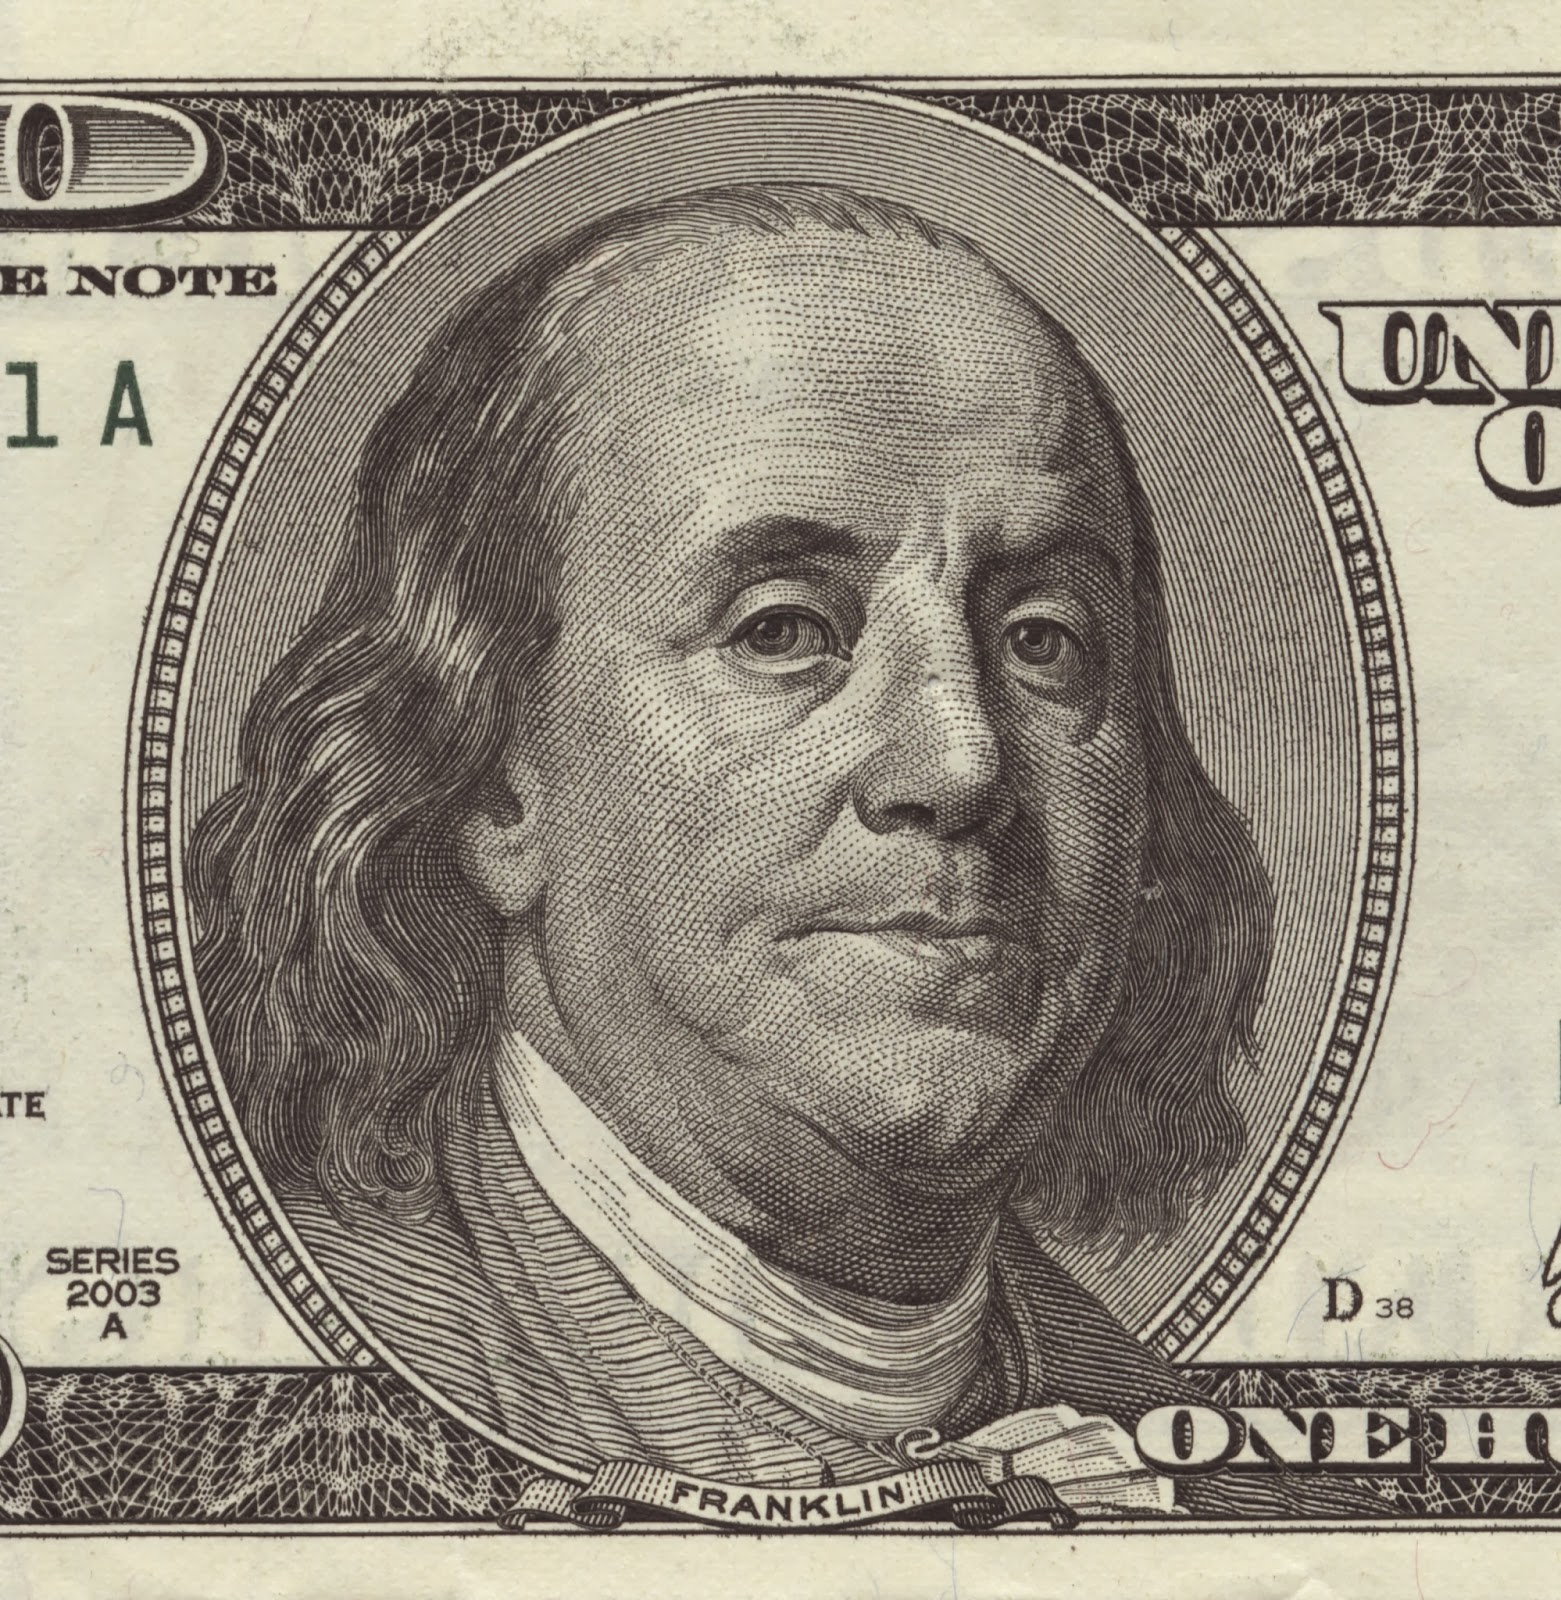 benjamin franklin enlightenment essays  benjamin franklin enlightenment essays